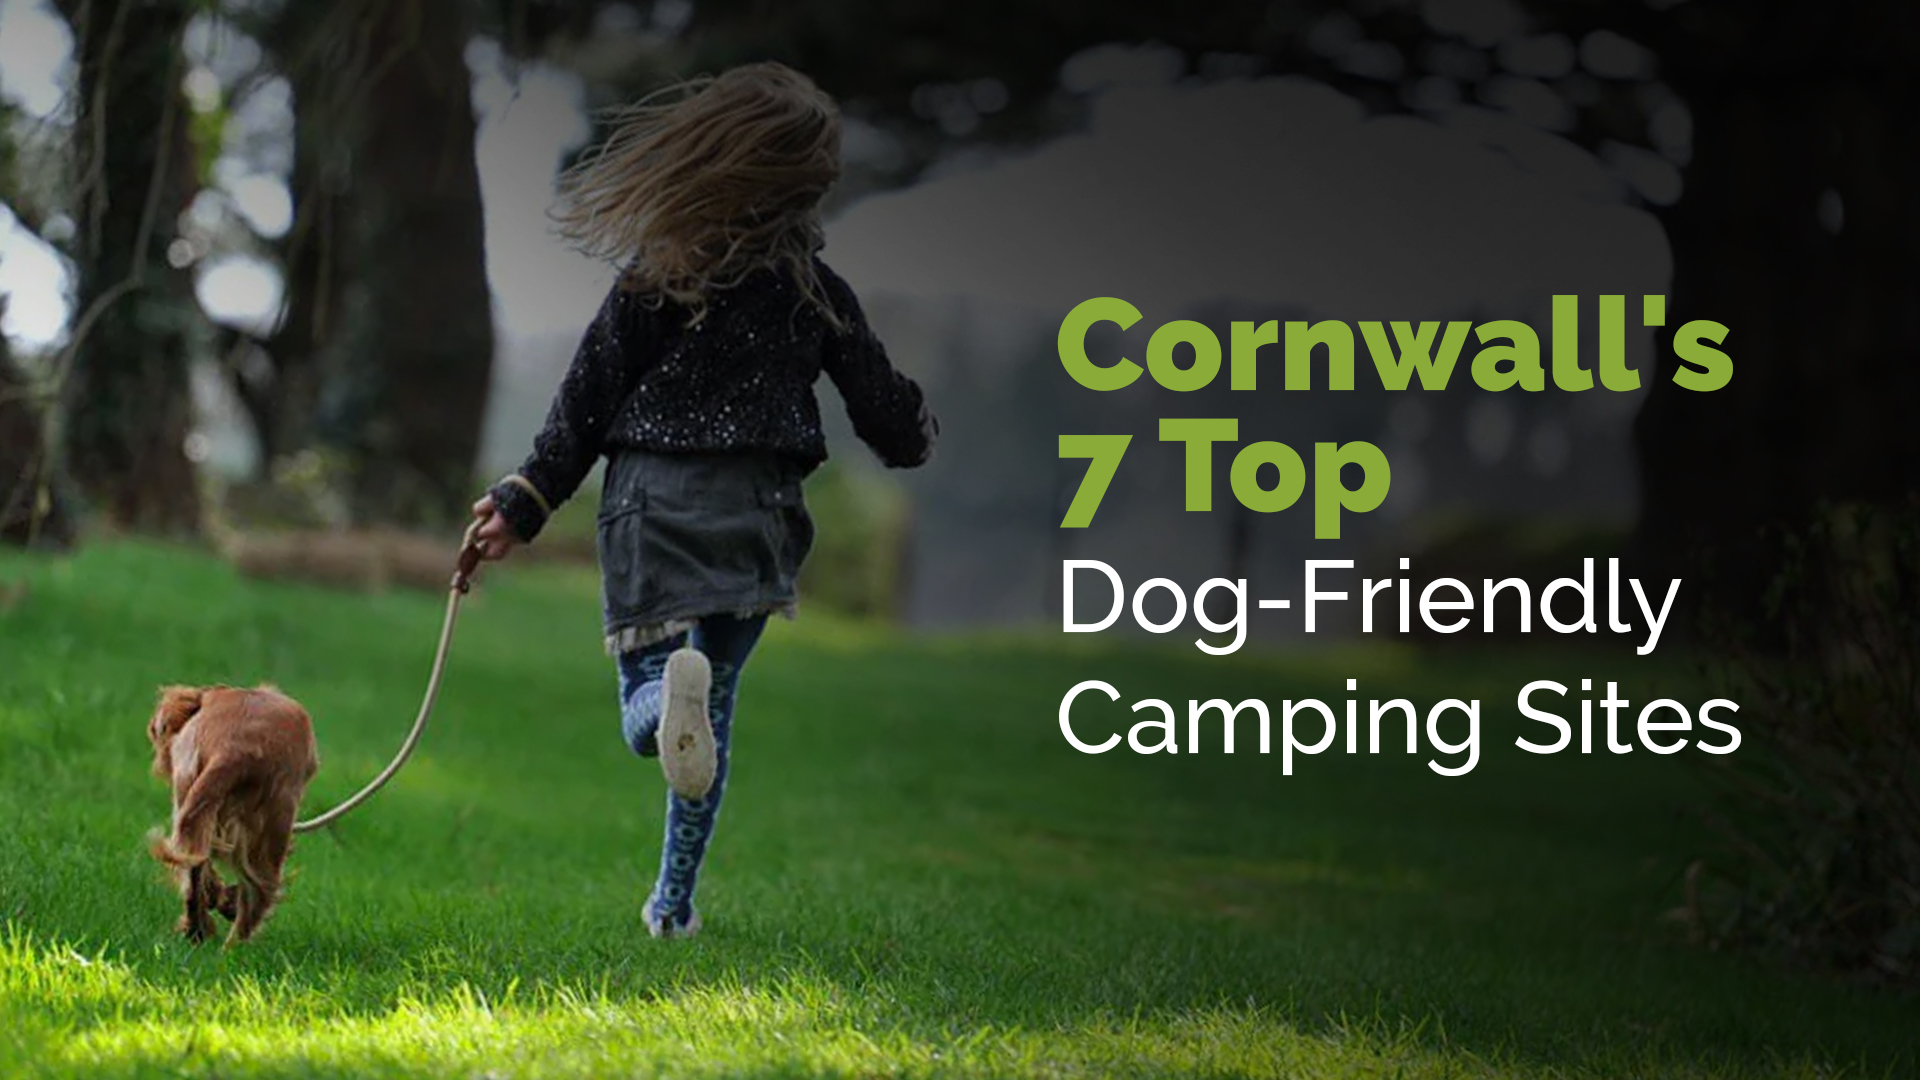 Cornwall's 7 Top Dog-Friendly Camping Sites